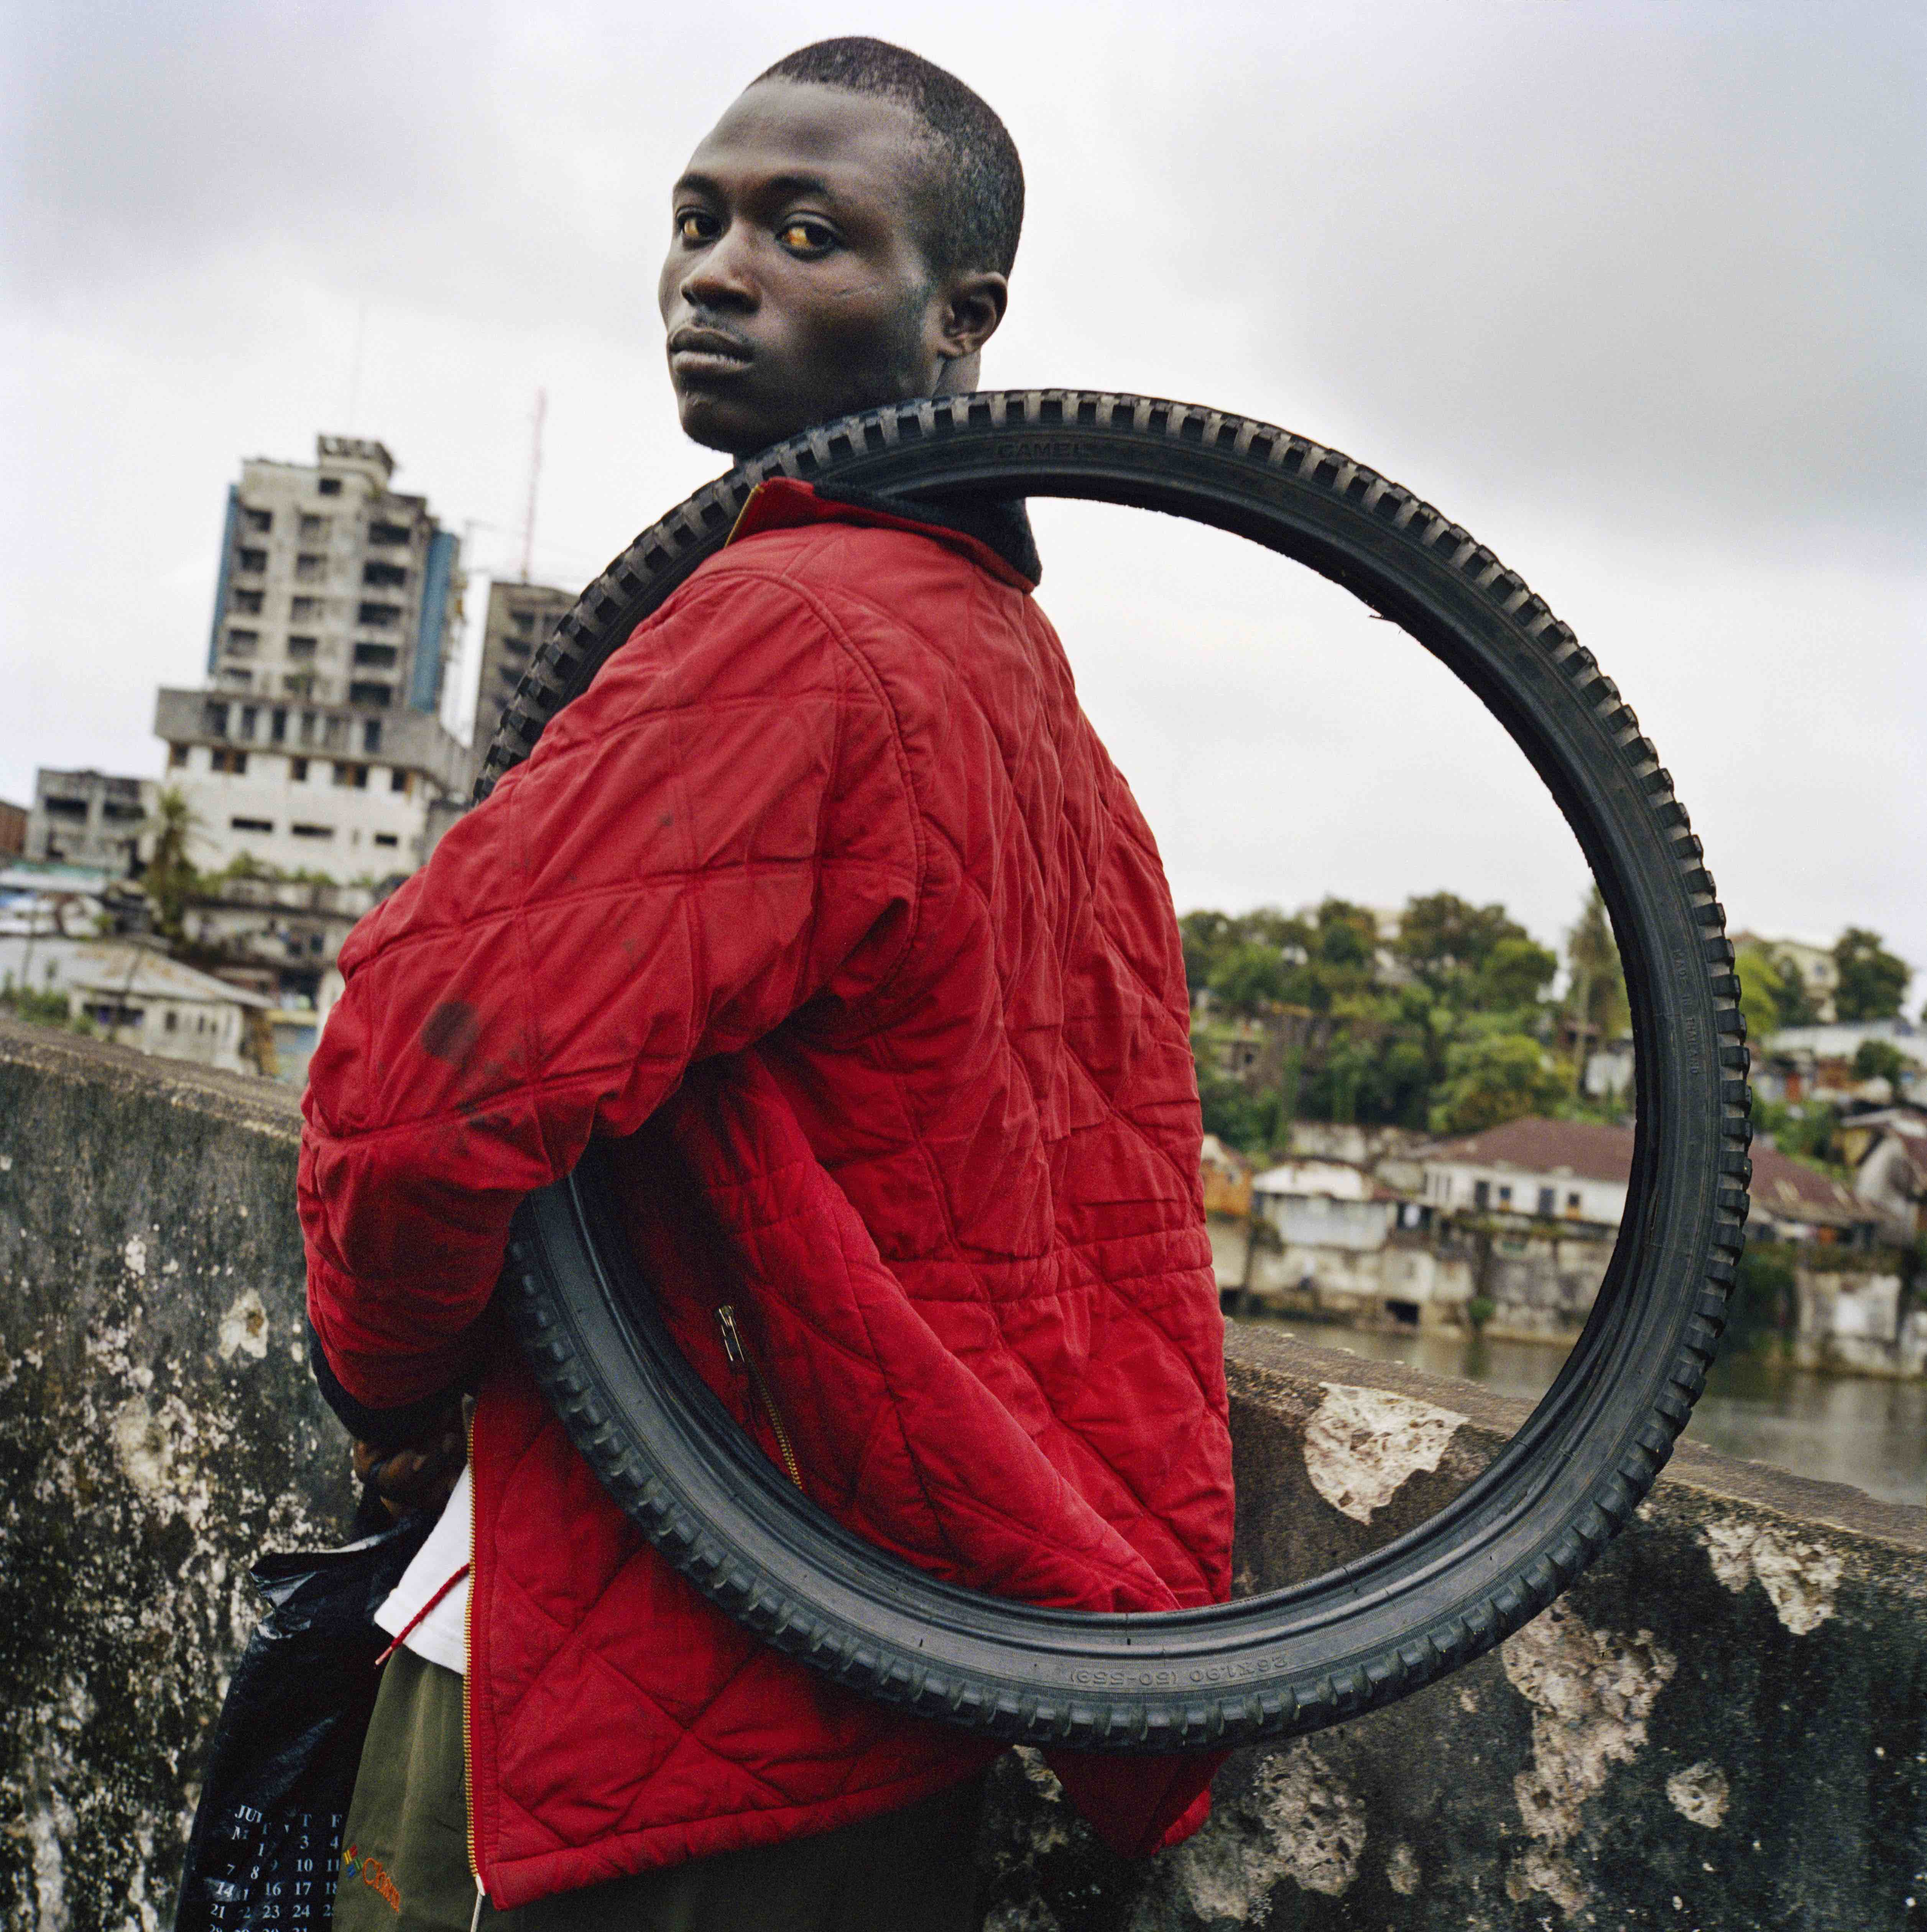 LIBERIA. 2003. Young man on the Gabriel Tucker bridge in central Monrovia carries a tyre which he is trying to sell. Liberia is one of the world's largest rubber producers and home to the Firestone Rubber Plantation. © Tim Hetherington / Magnum Photos